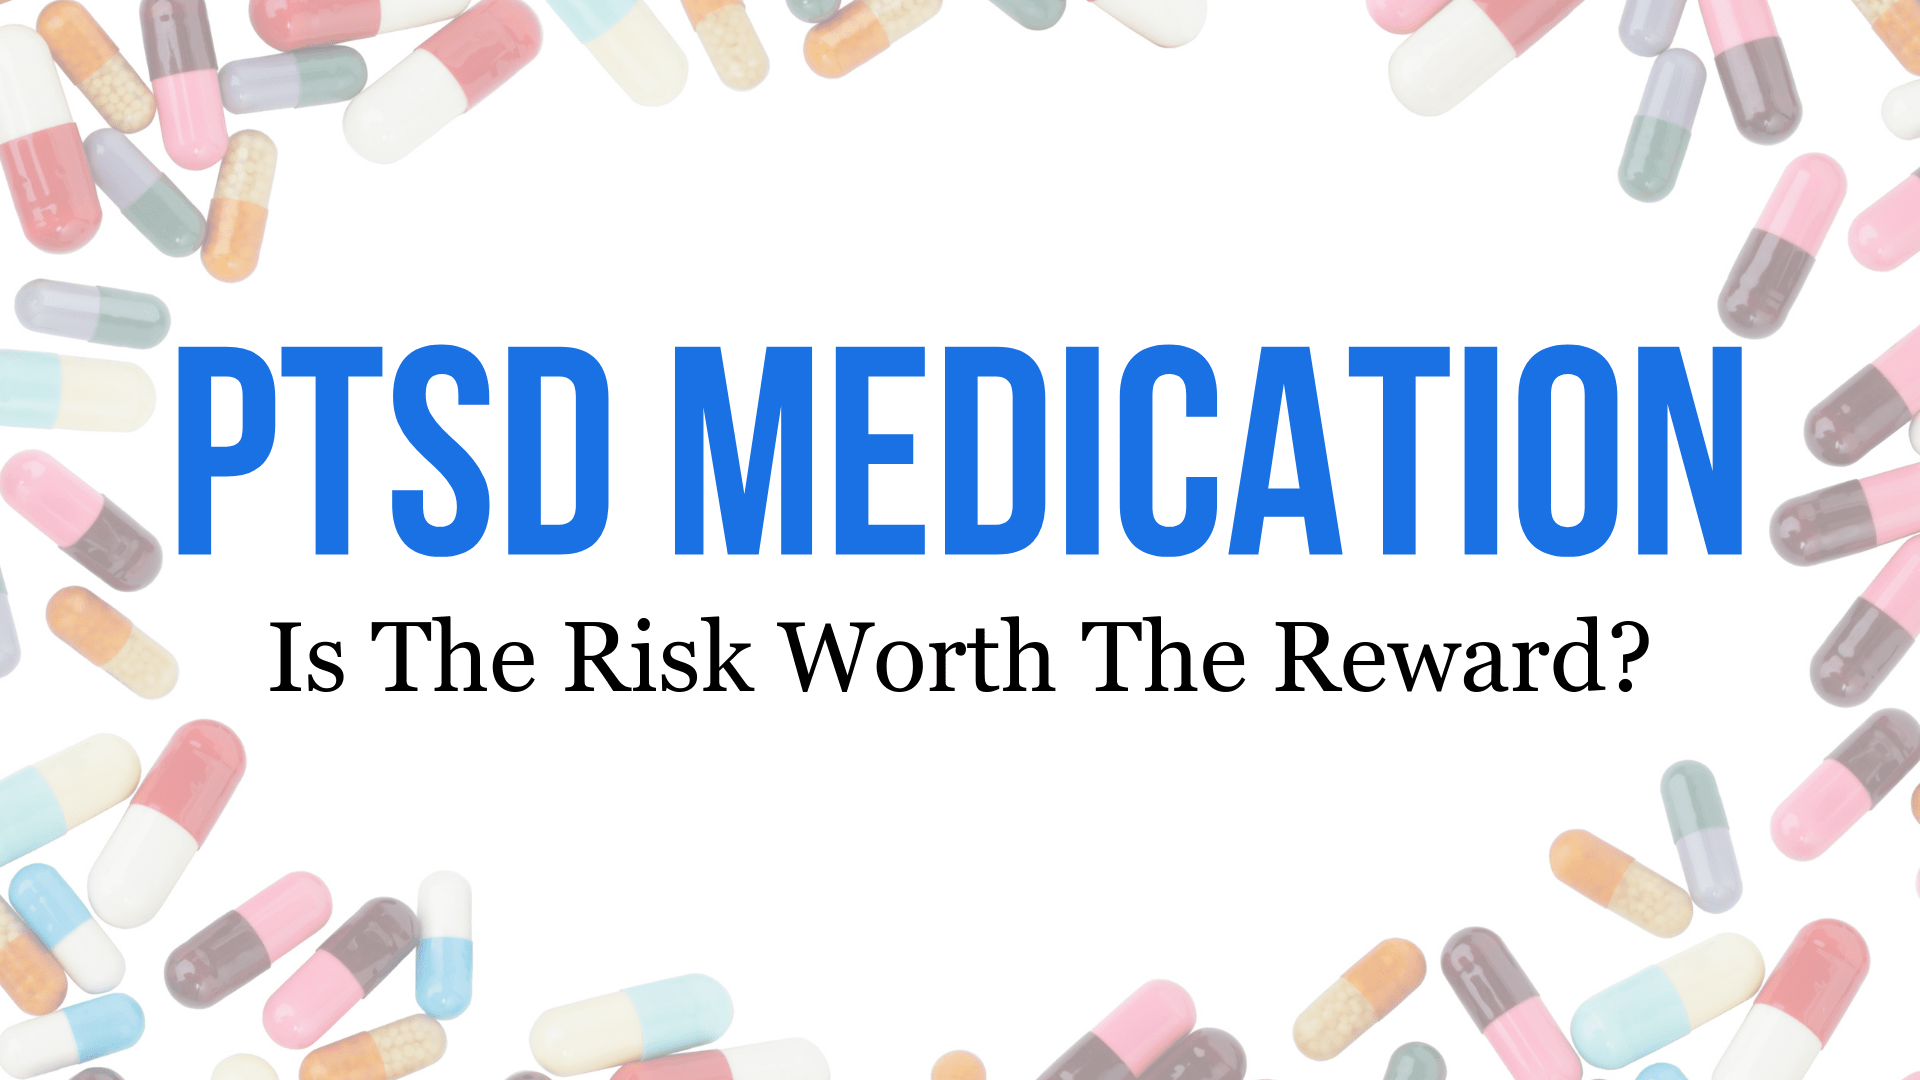 PTSD Medication And Drugs: Is The Risk Worth The Reward?